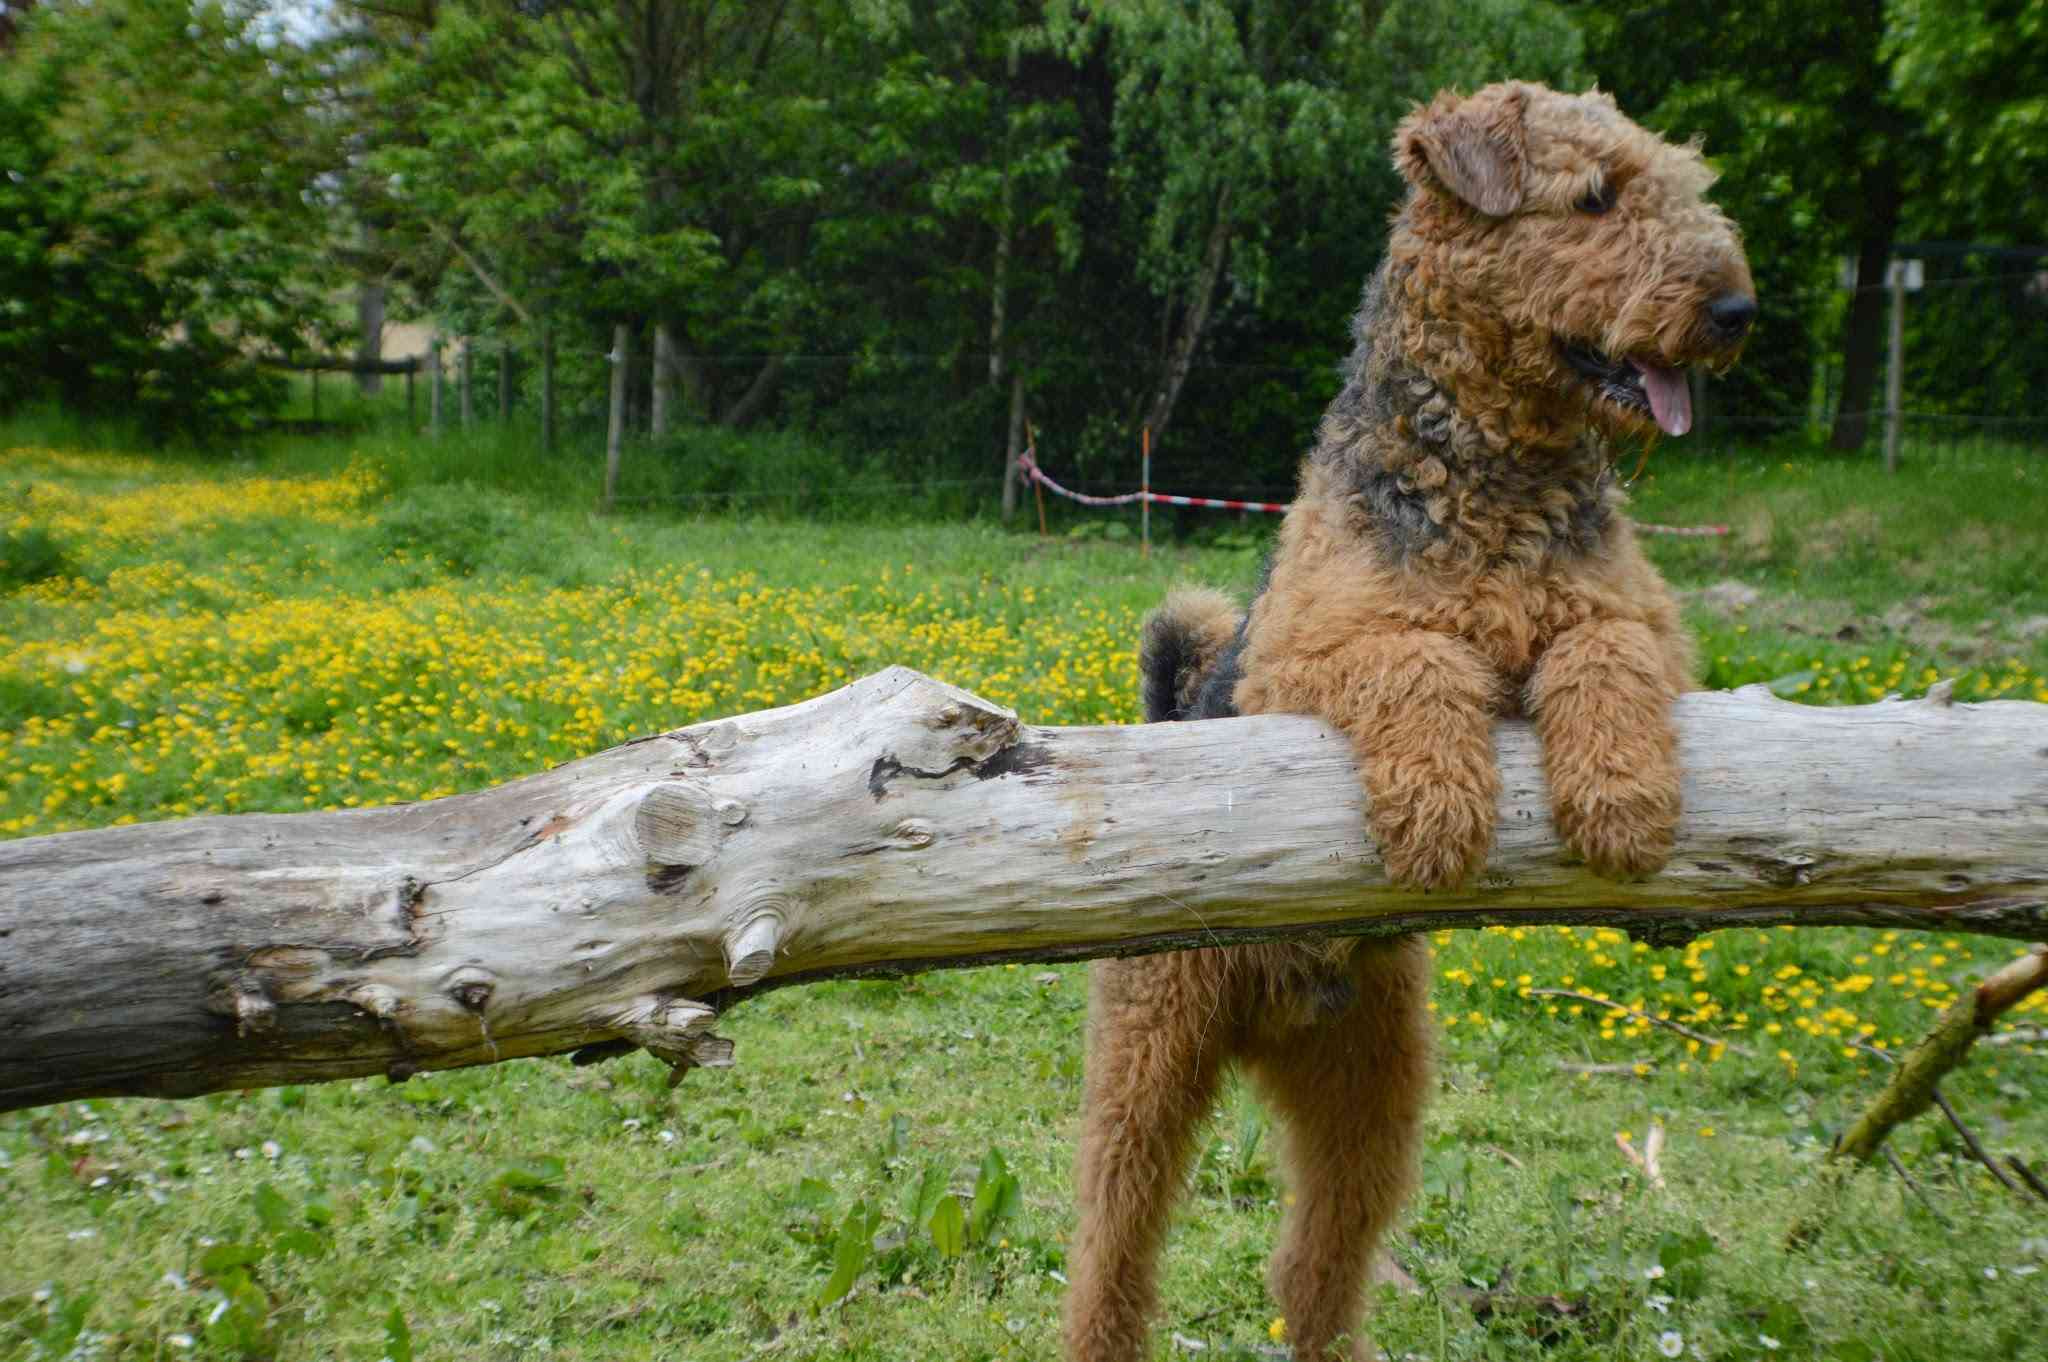 A Welsh Terrier with two paws up on a log